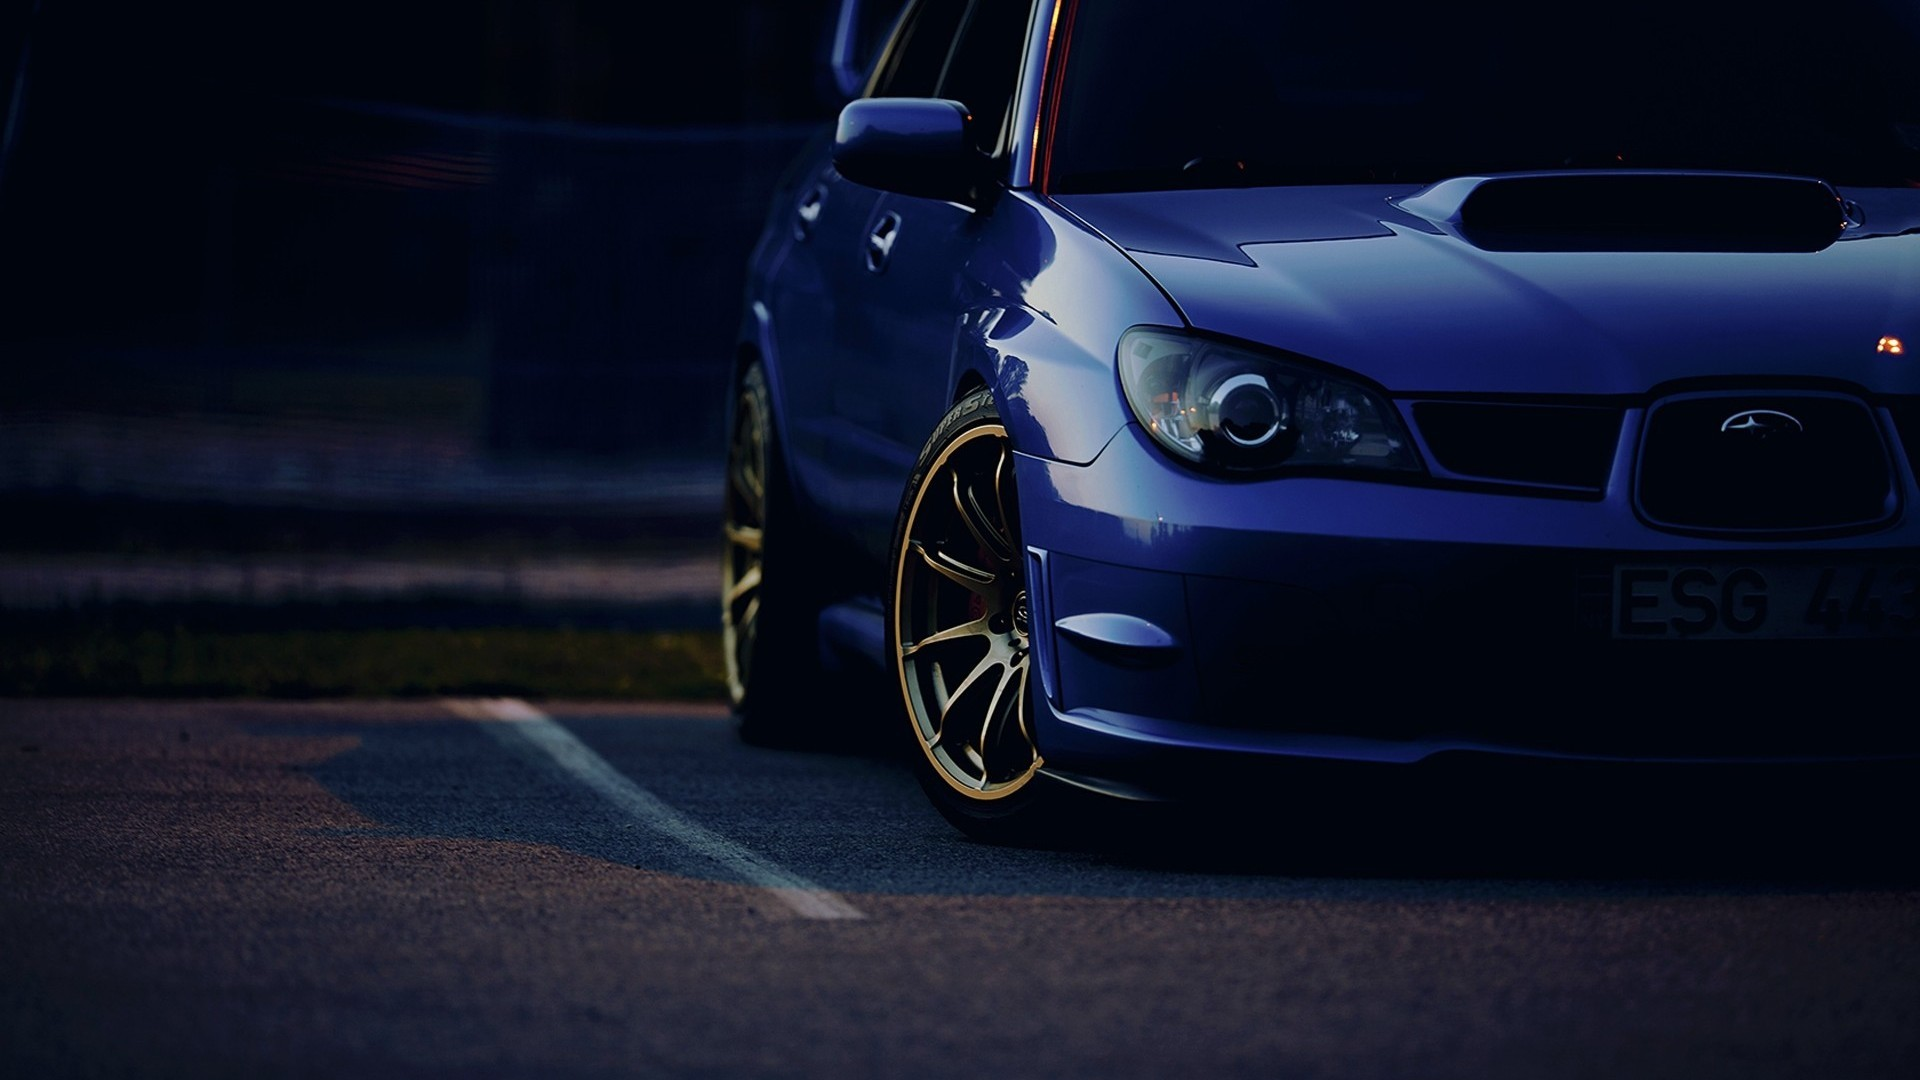 Subaru Impreza WRX STI Car Wallpaper HD Wallpaper | WallpaperLepi